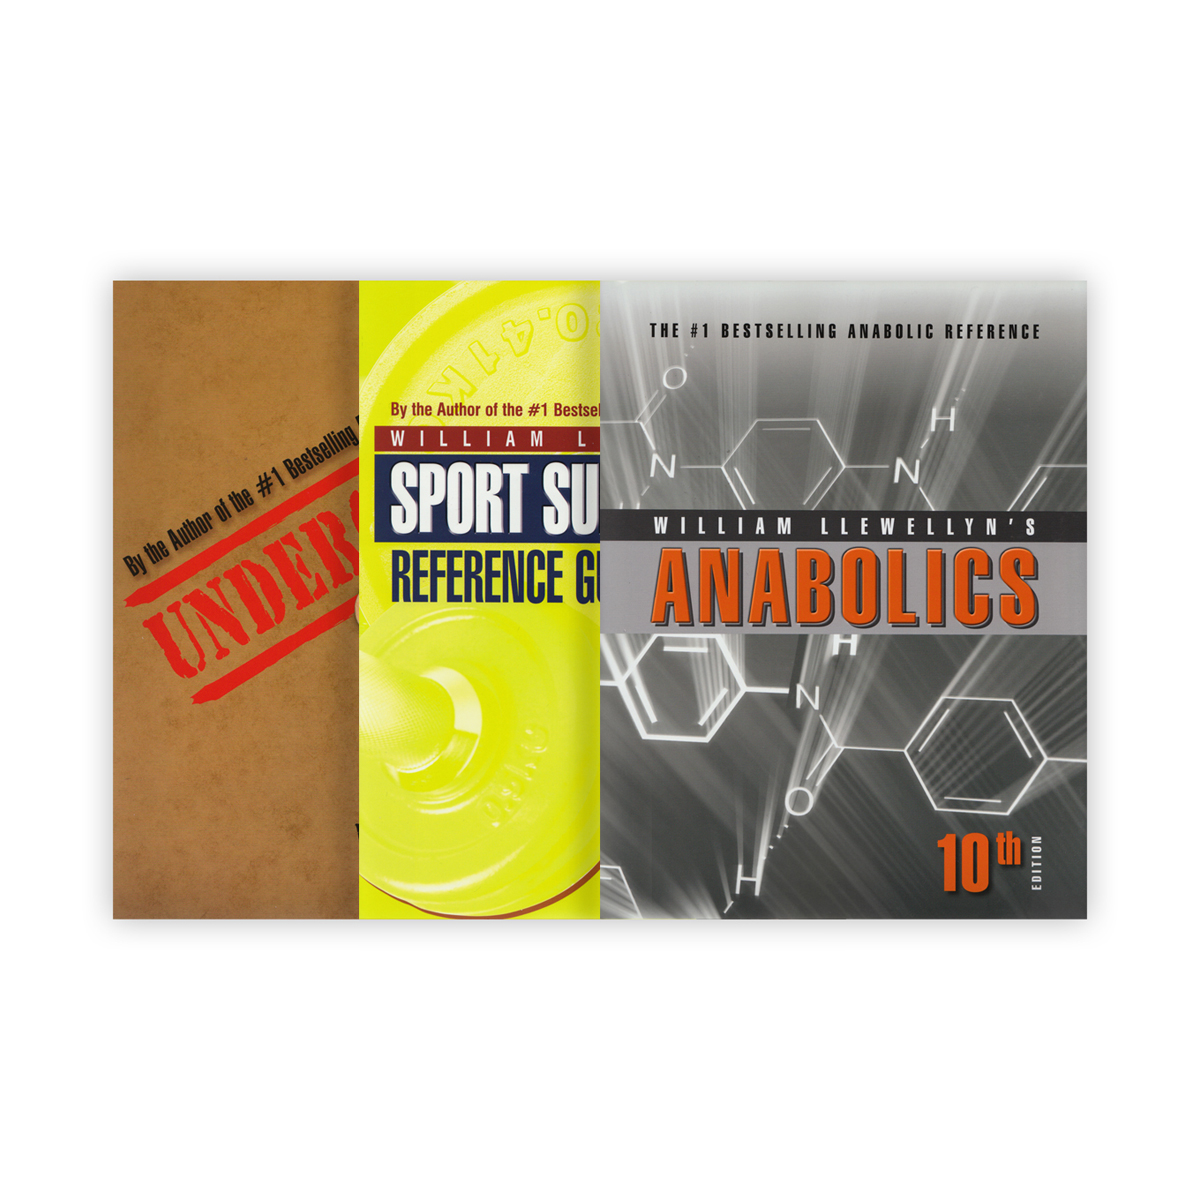 William Llewellyn's Anabolics and Sport Supplements - 3 book set